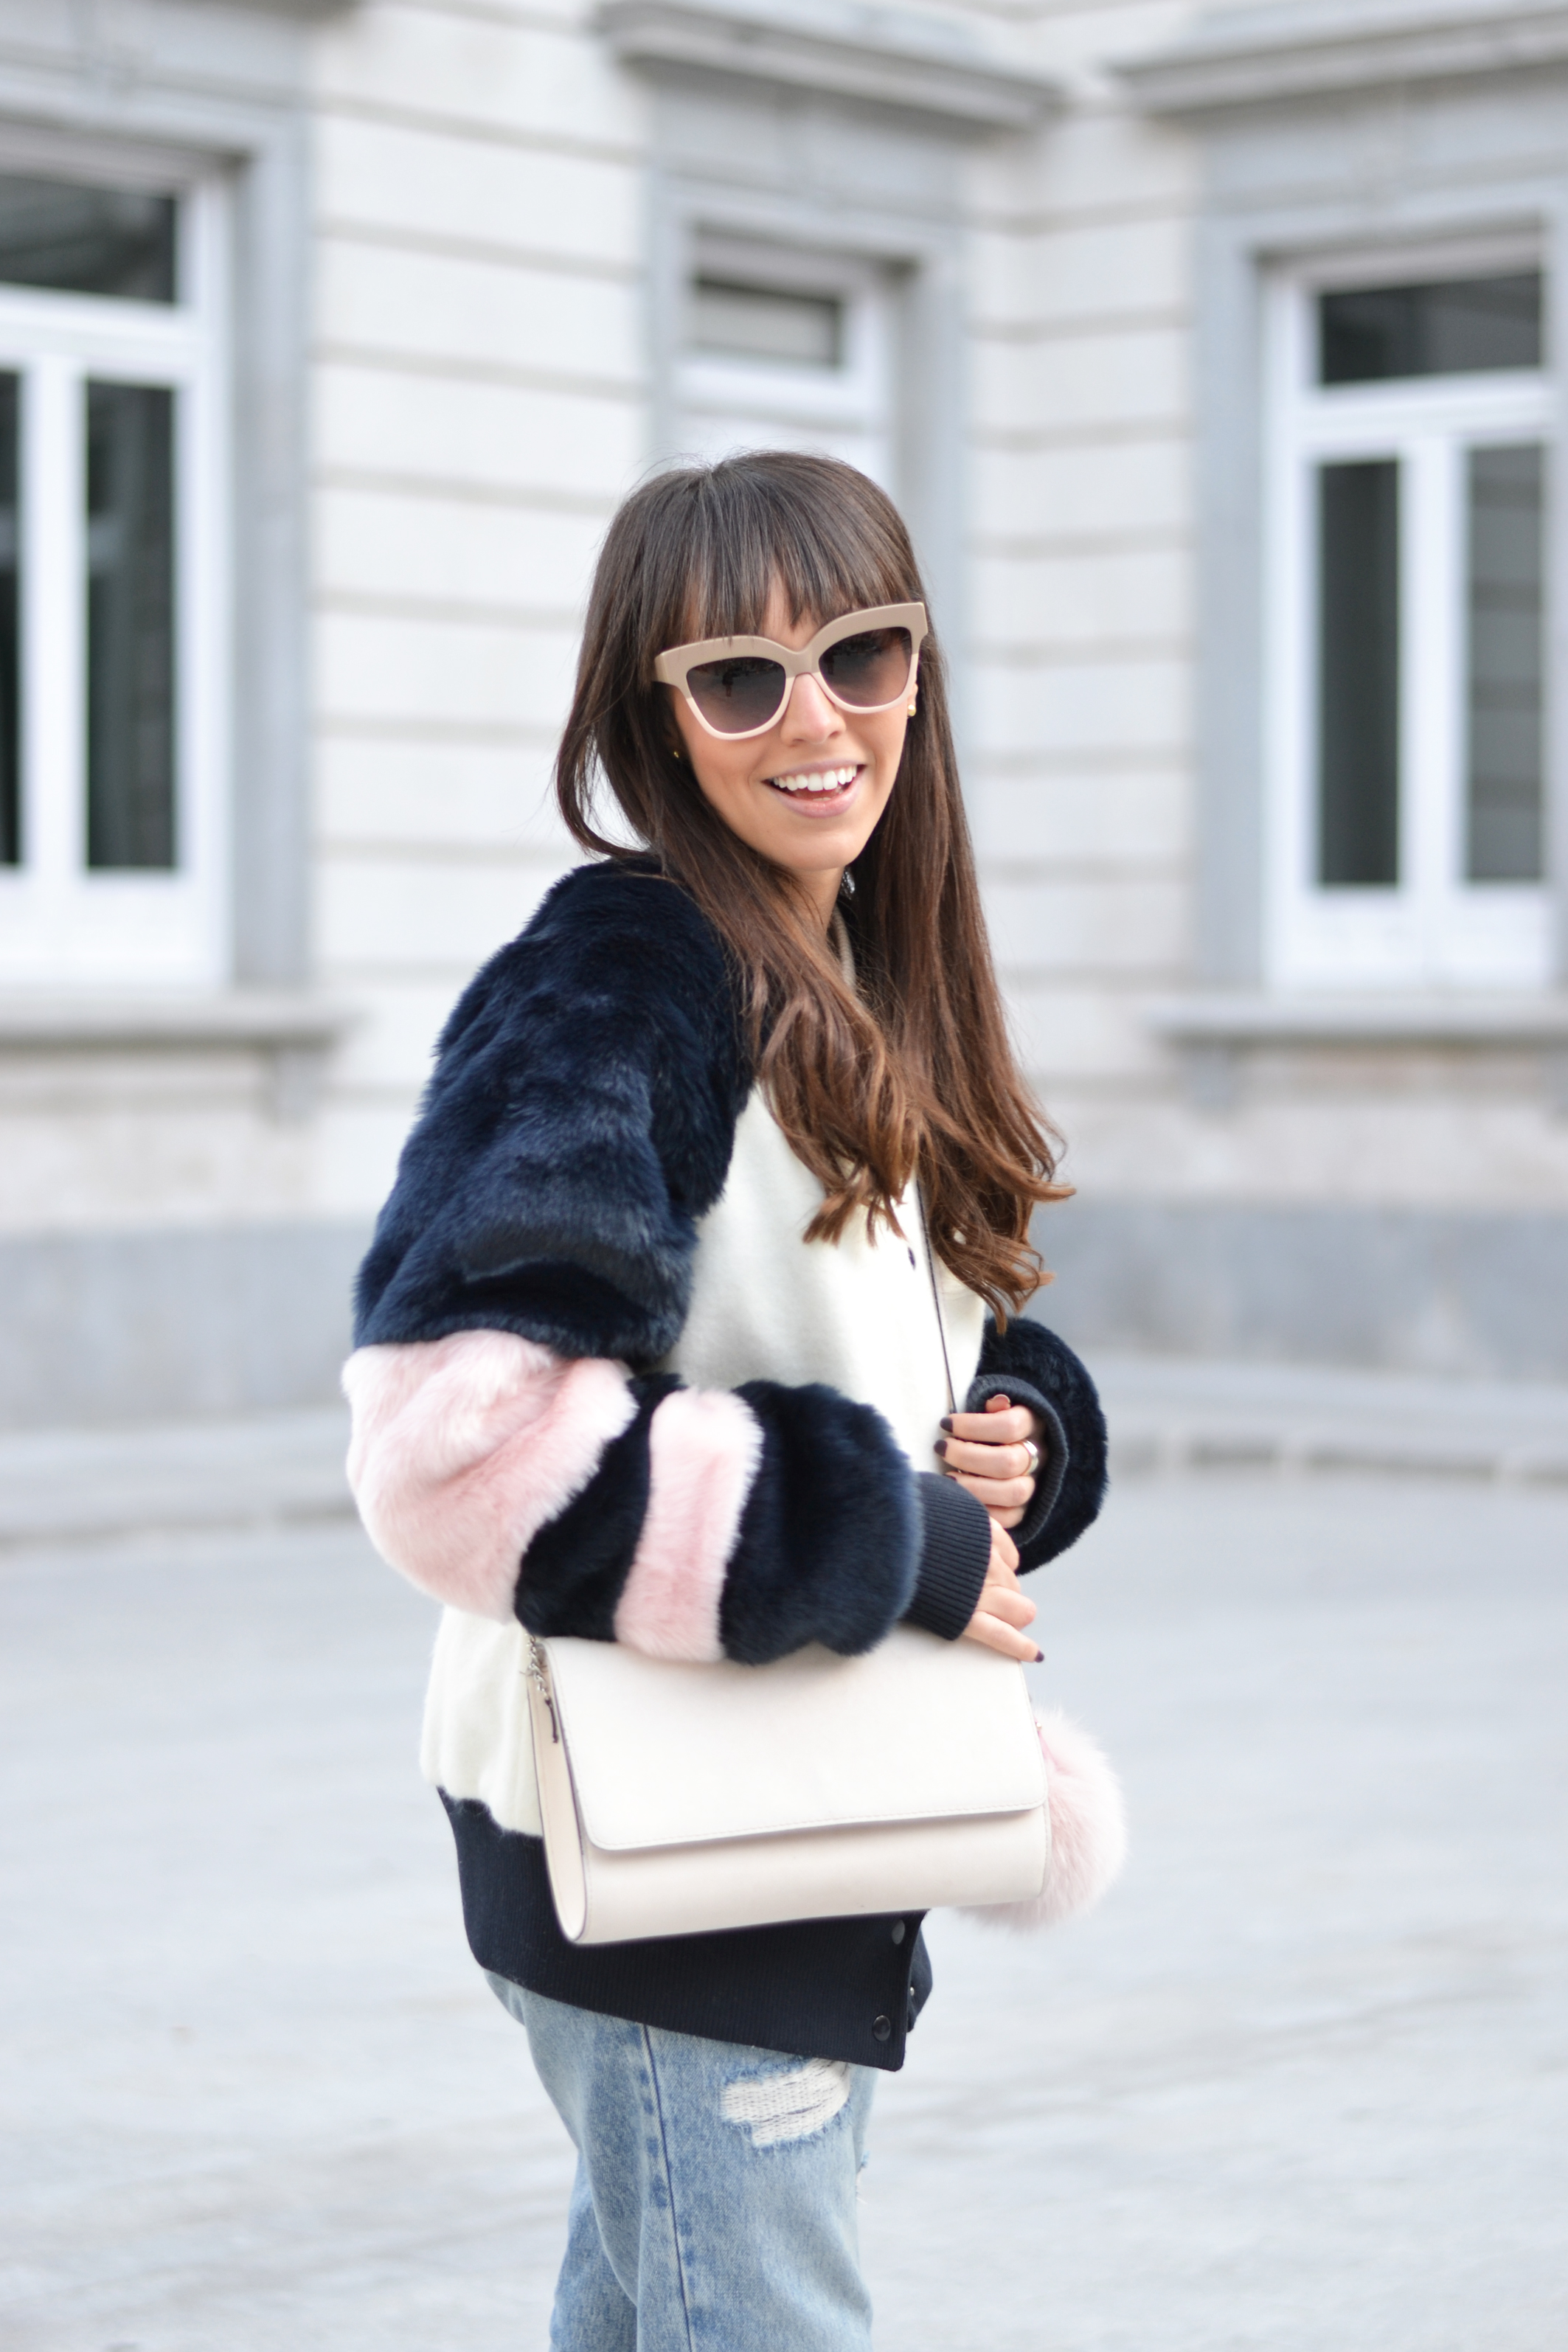 Fluffy coat, mom jeans, casual winter outfit, street style